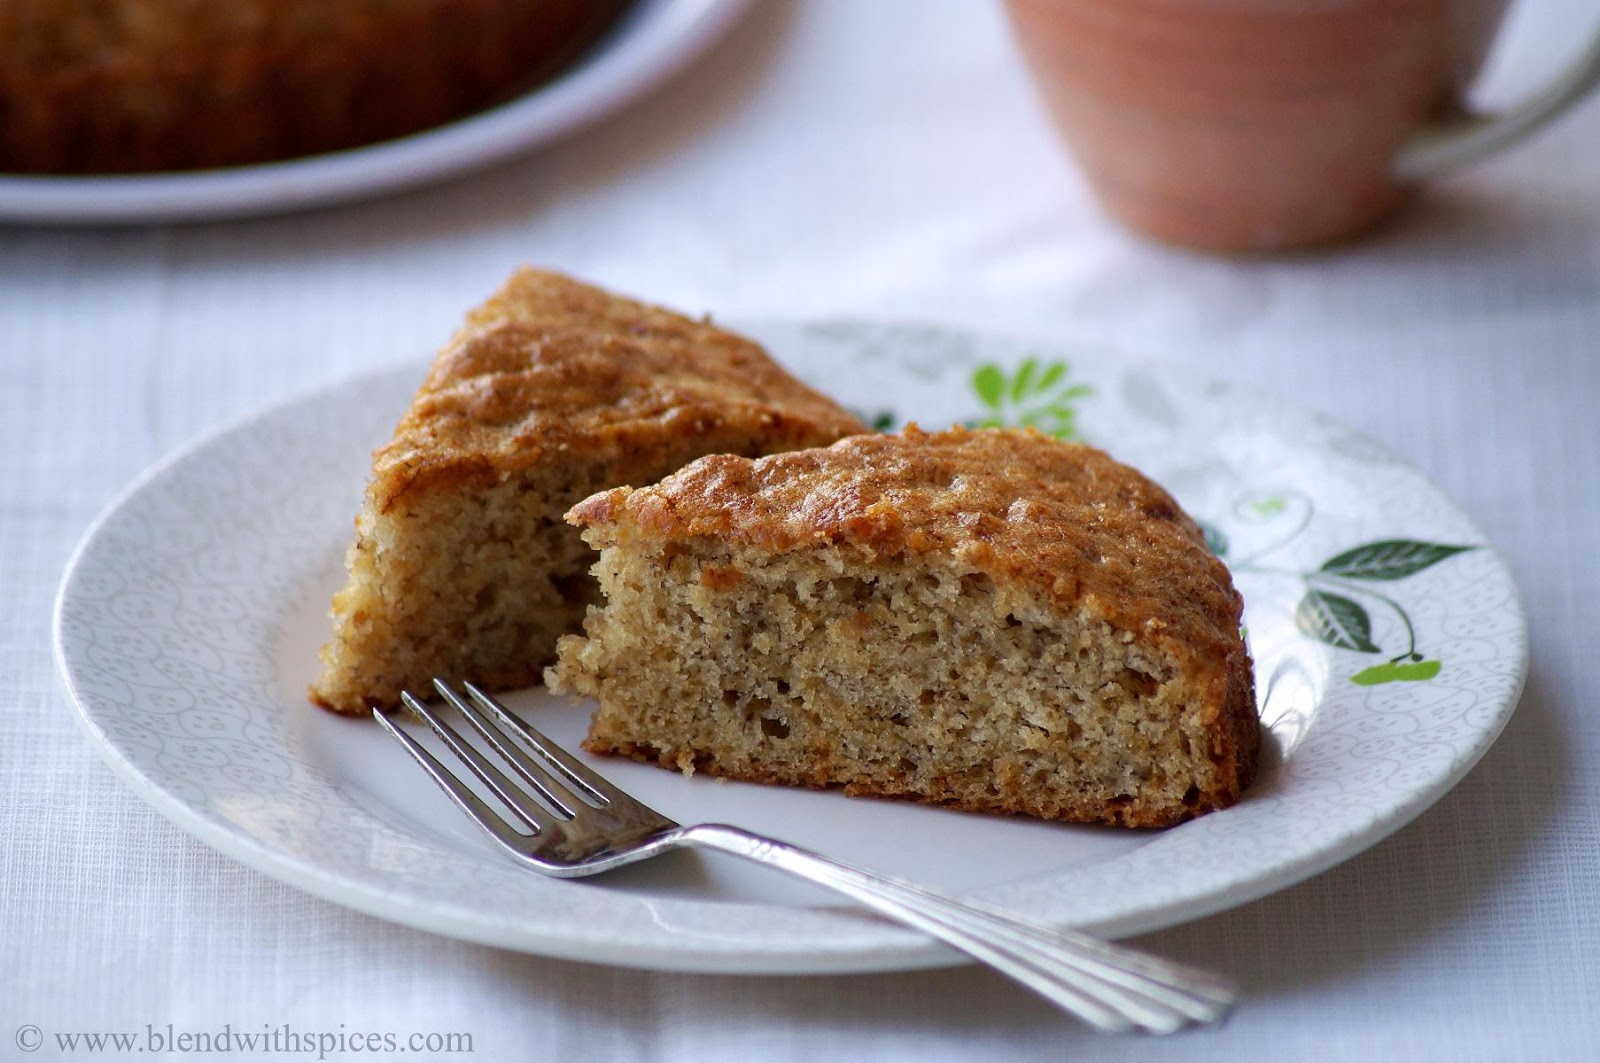 Banana Cake Recipe With Oil Joy Of Baking: Eggless Banana Cake Recipe